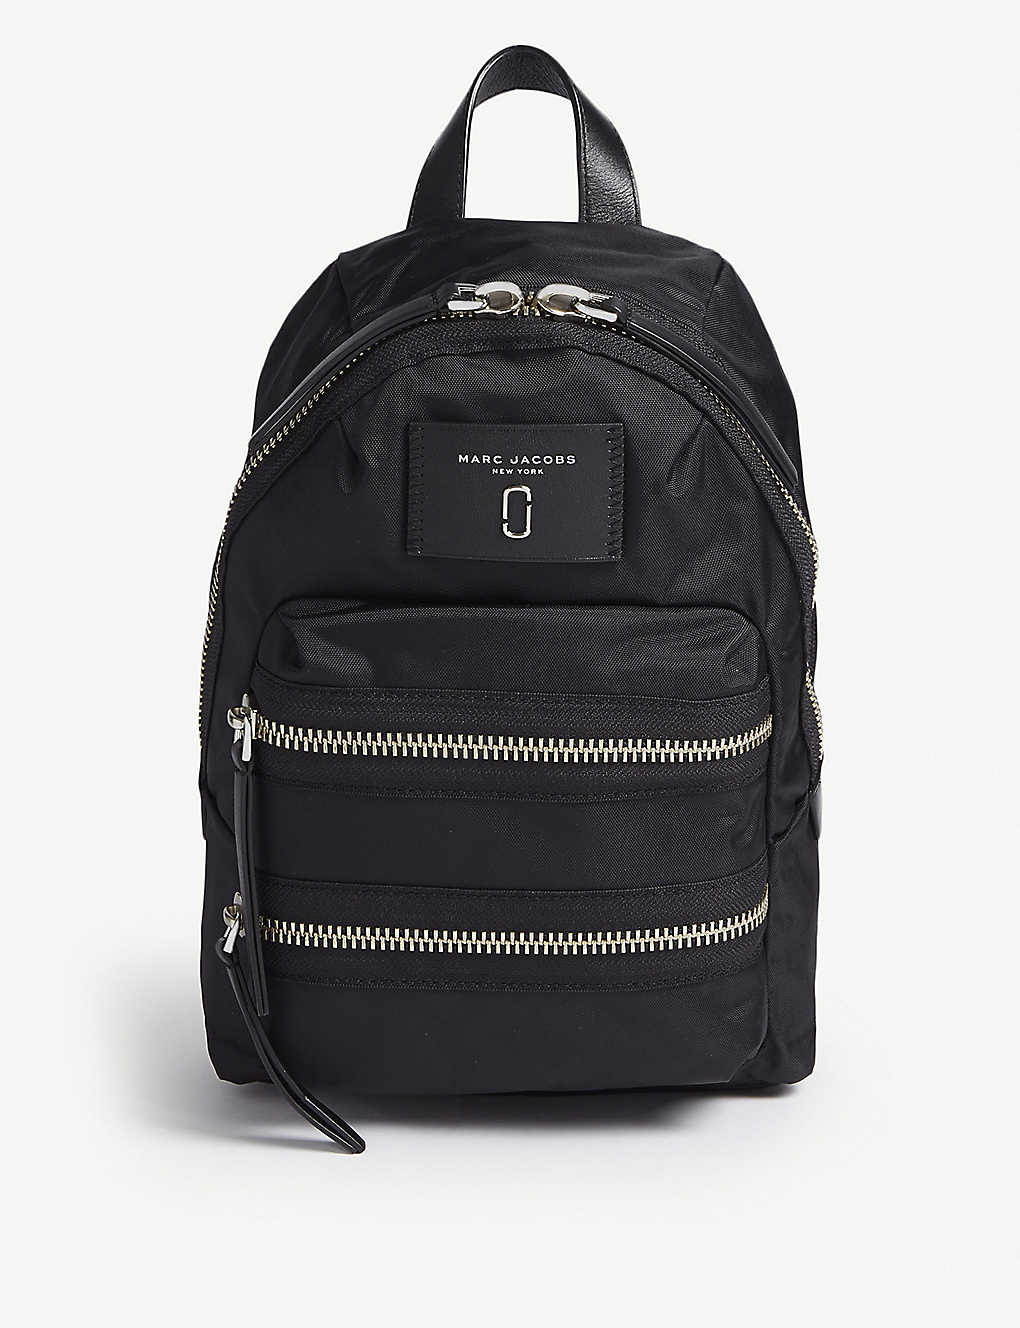 e5831eaf63c45 MARC JACOBS - Biker nylon mini backpack